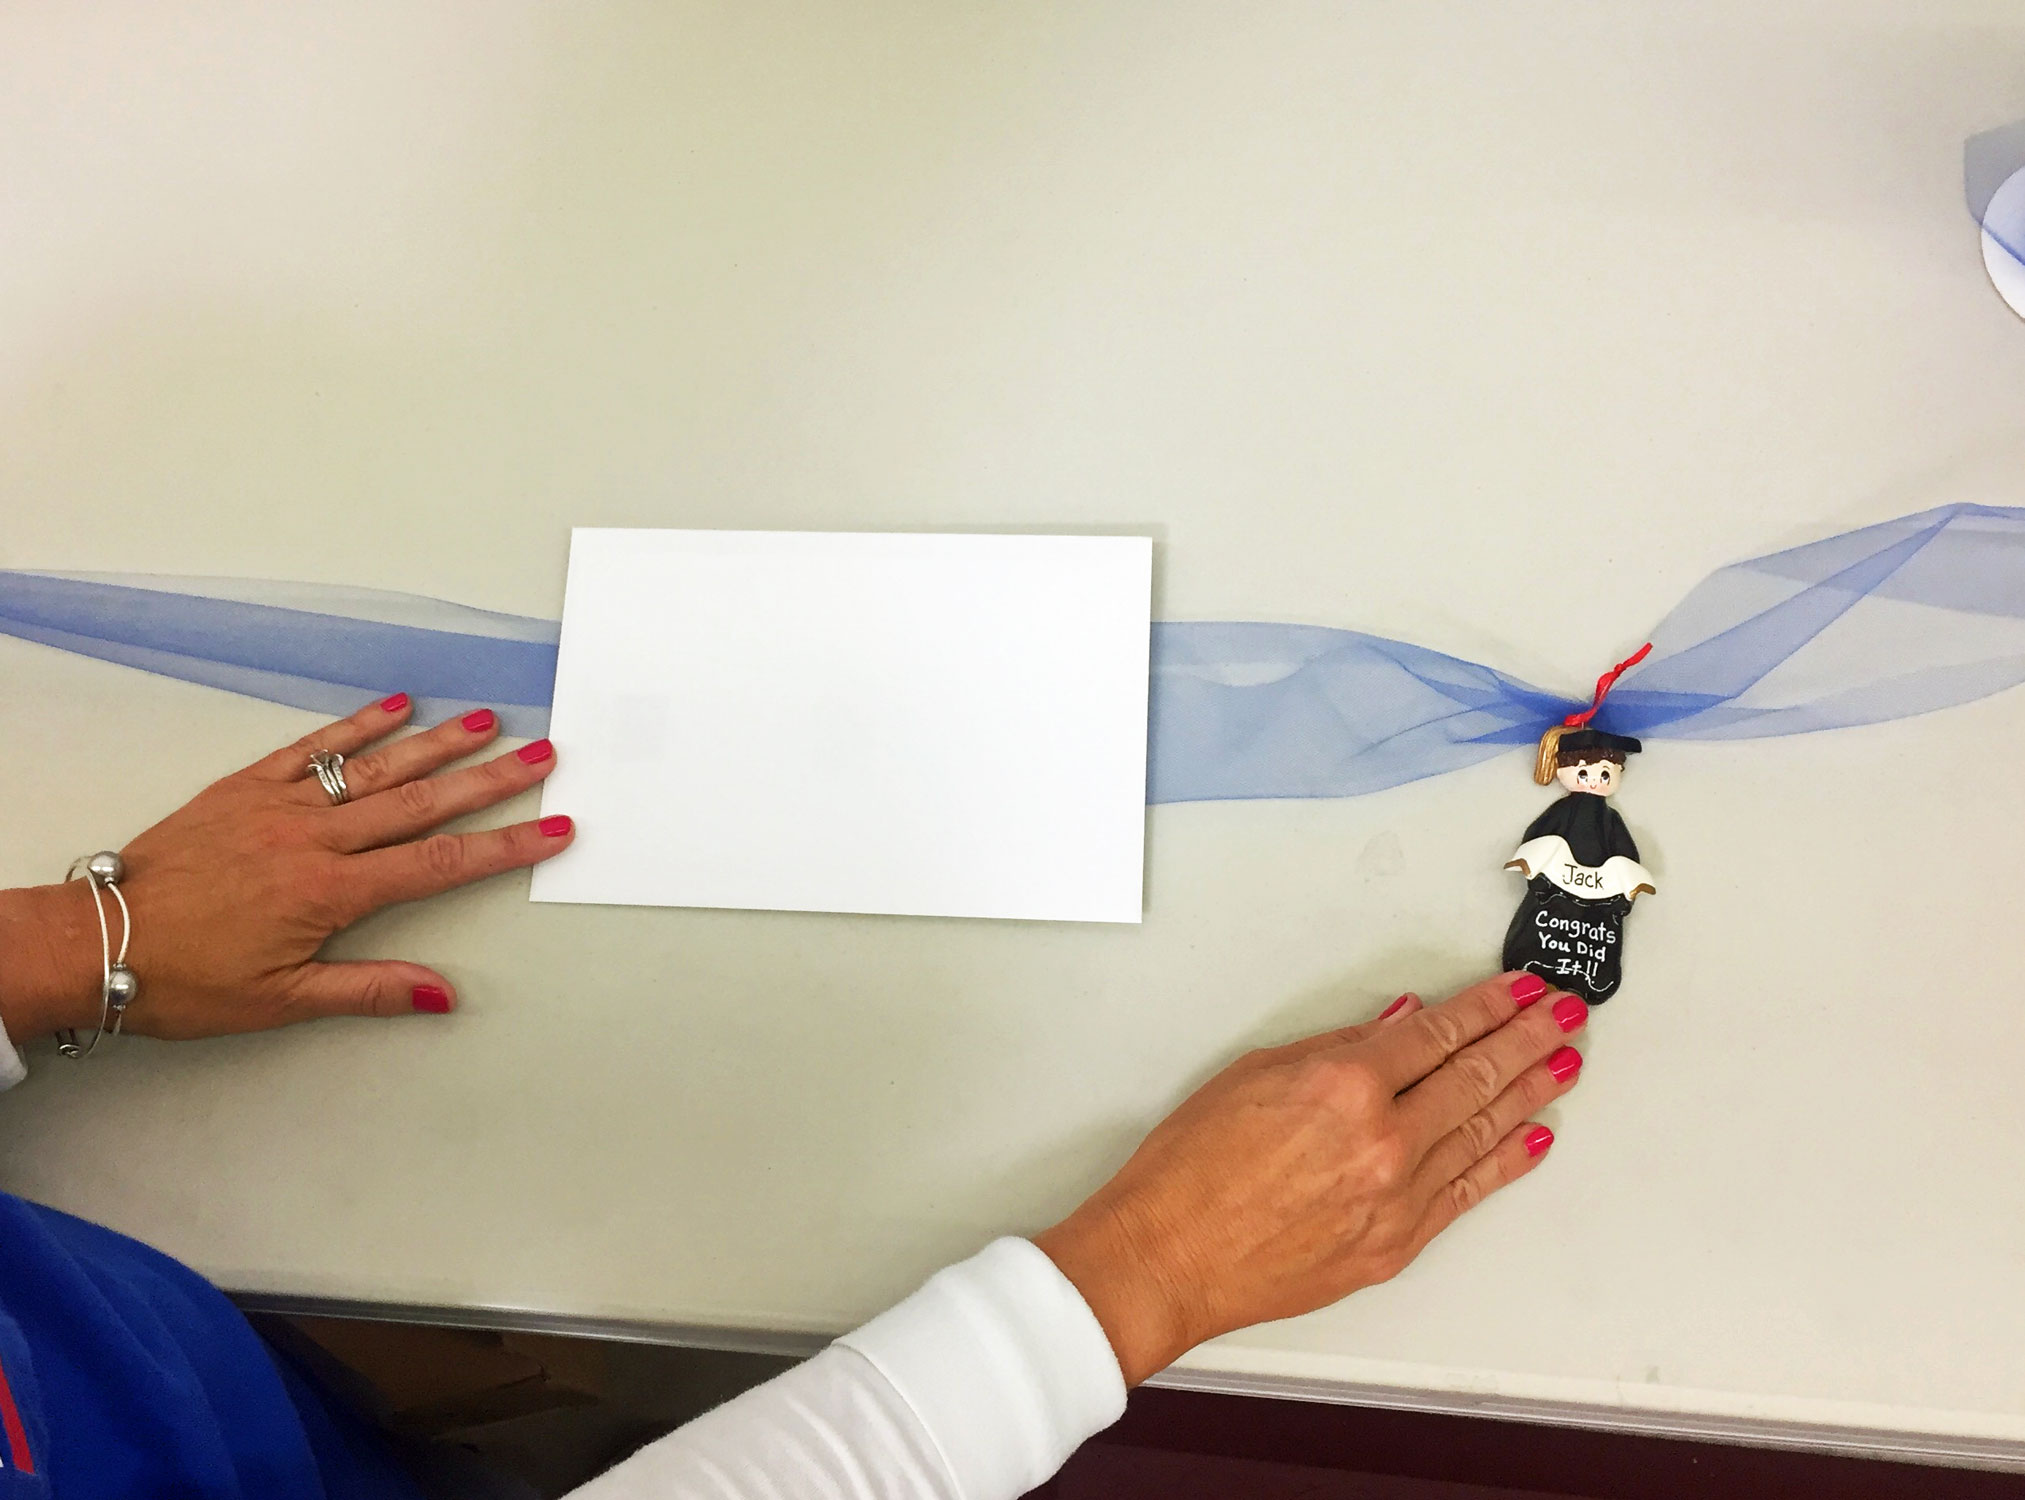 Step 3 is to lay the ribbon flat under the envelope with the ornament towards one end threaded | OrnamentShop.com